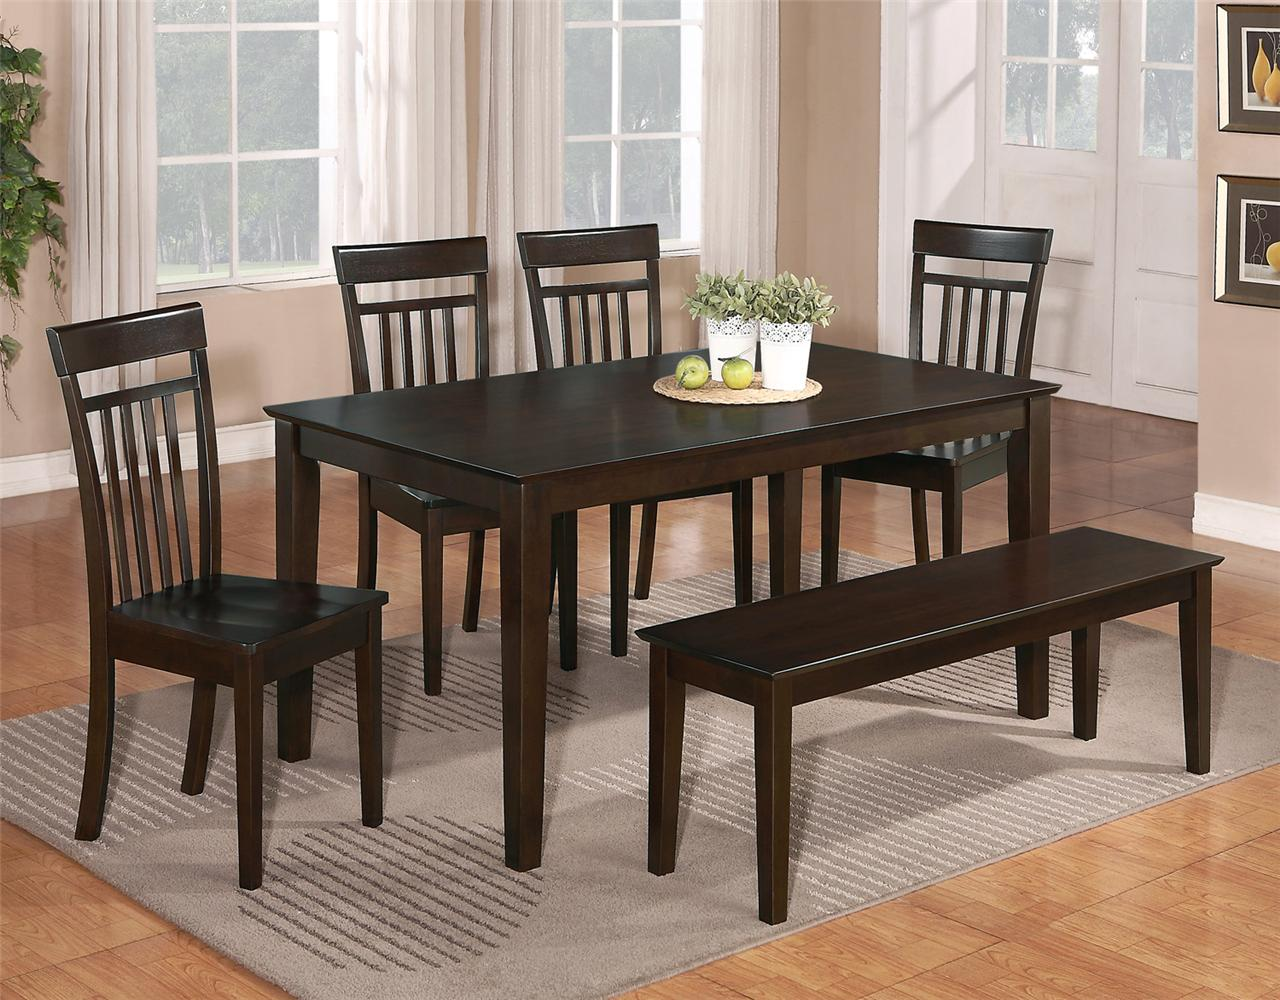 6 Pc Dinette Kitchen Dining Room Set Table W 4 Wood Chair And 1 Bench Cappuccino Ebay